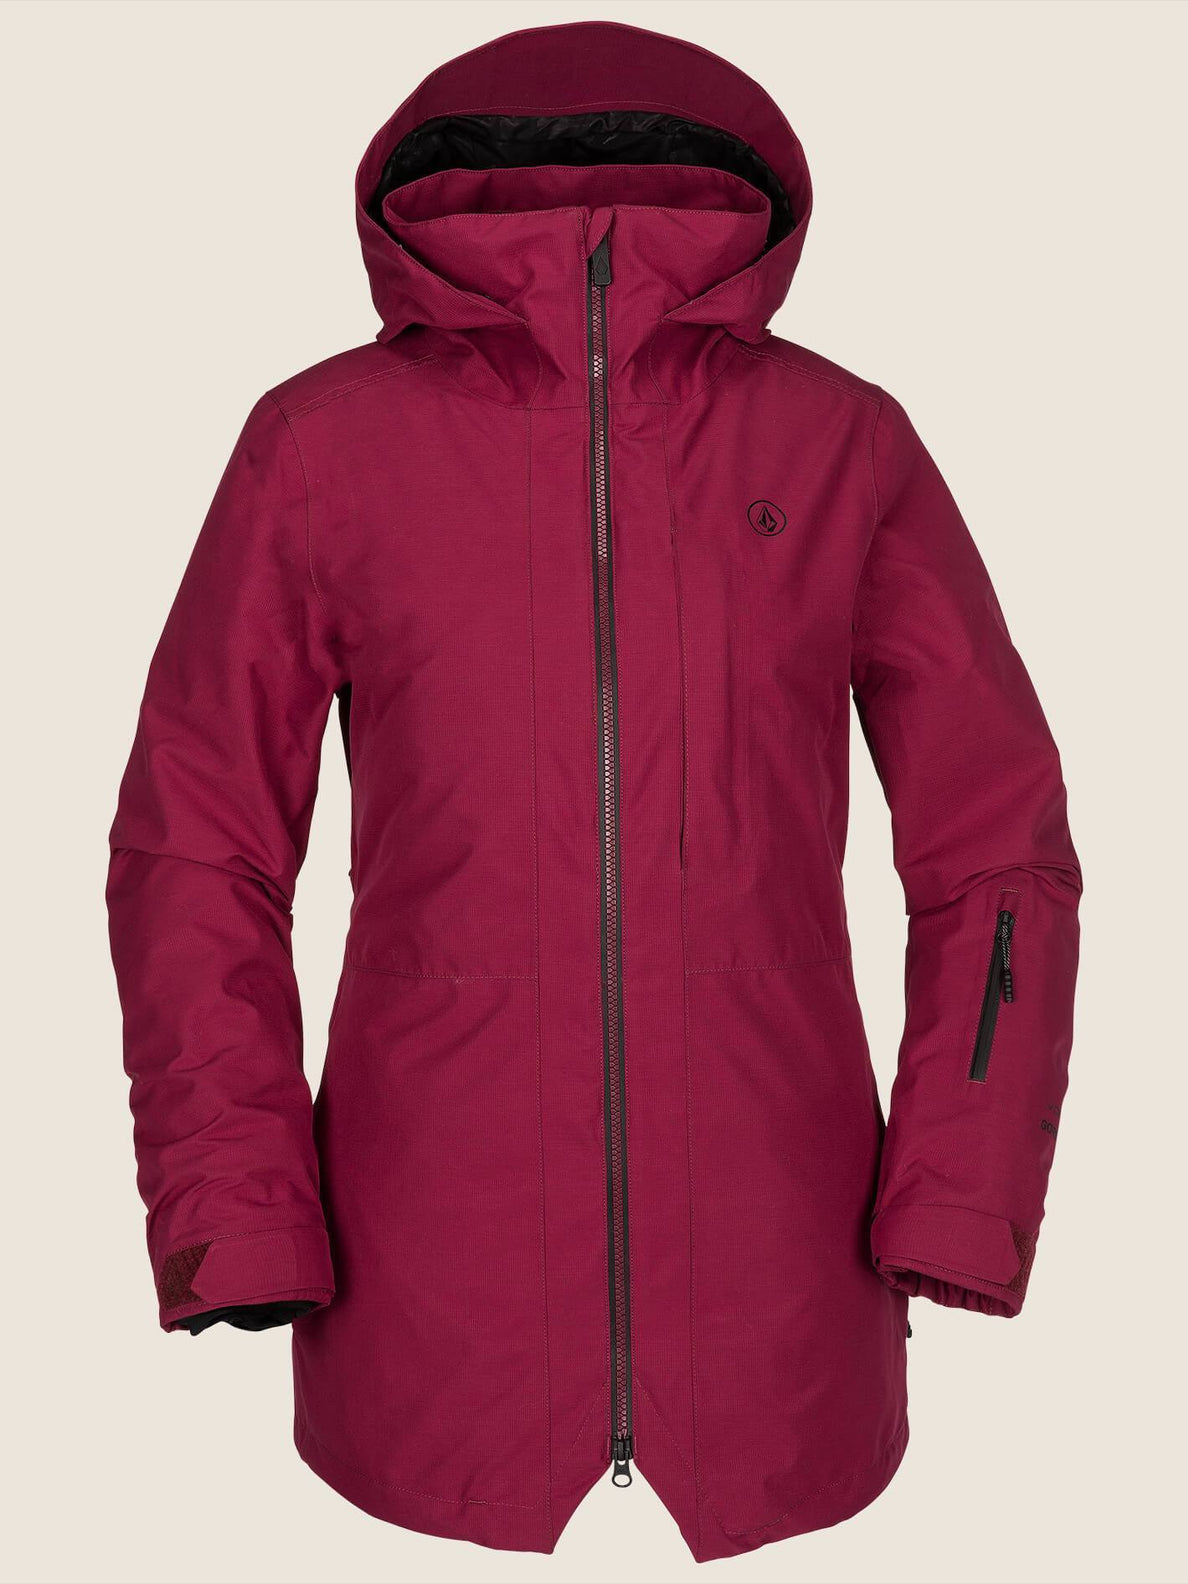 Snowboarding – Gore Jacket Volcom Tex 1 Outdoor Iris 3 In qOqYZ